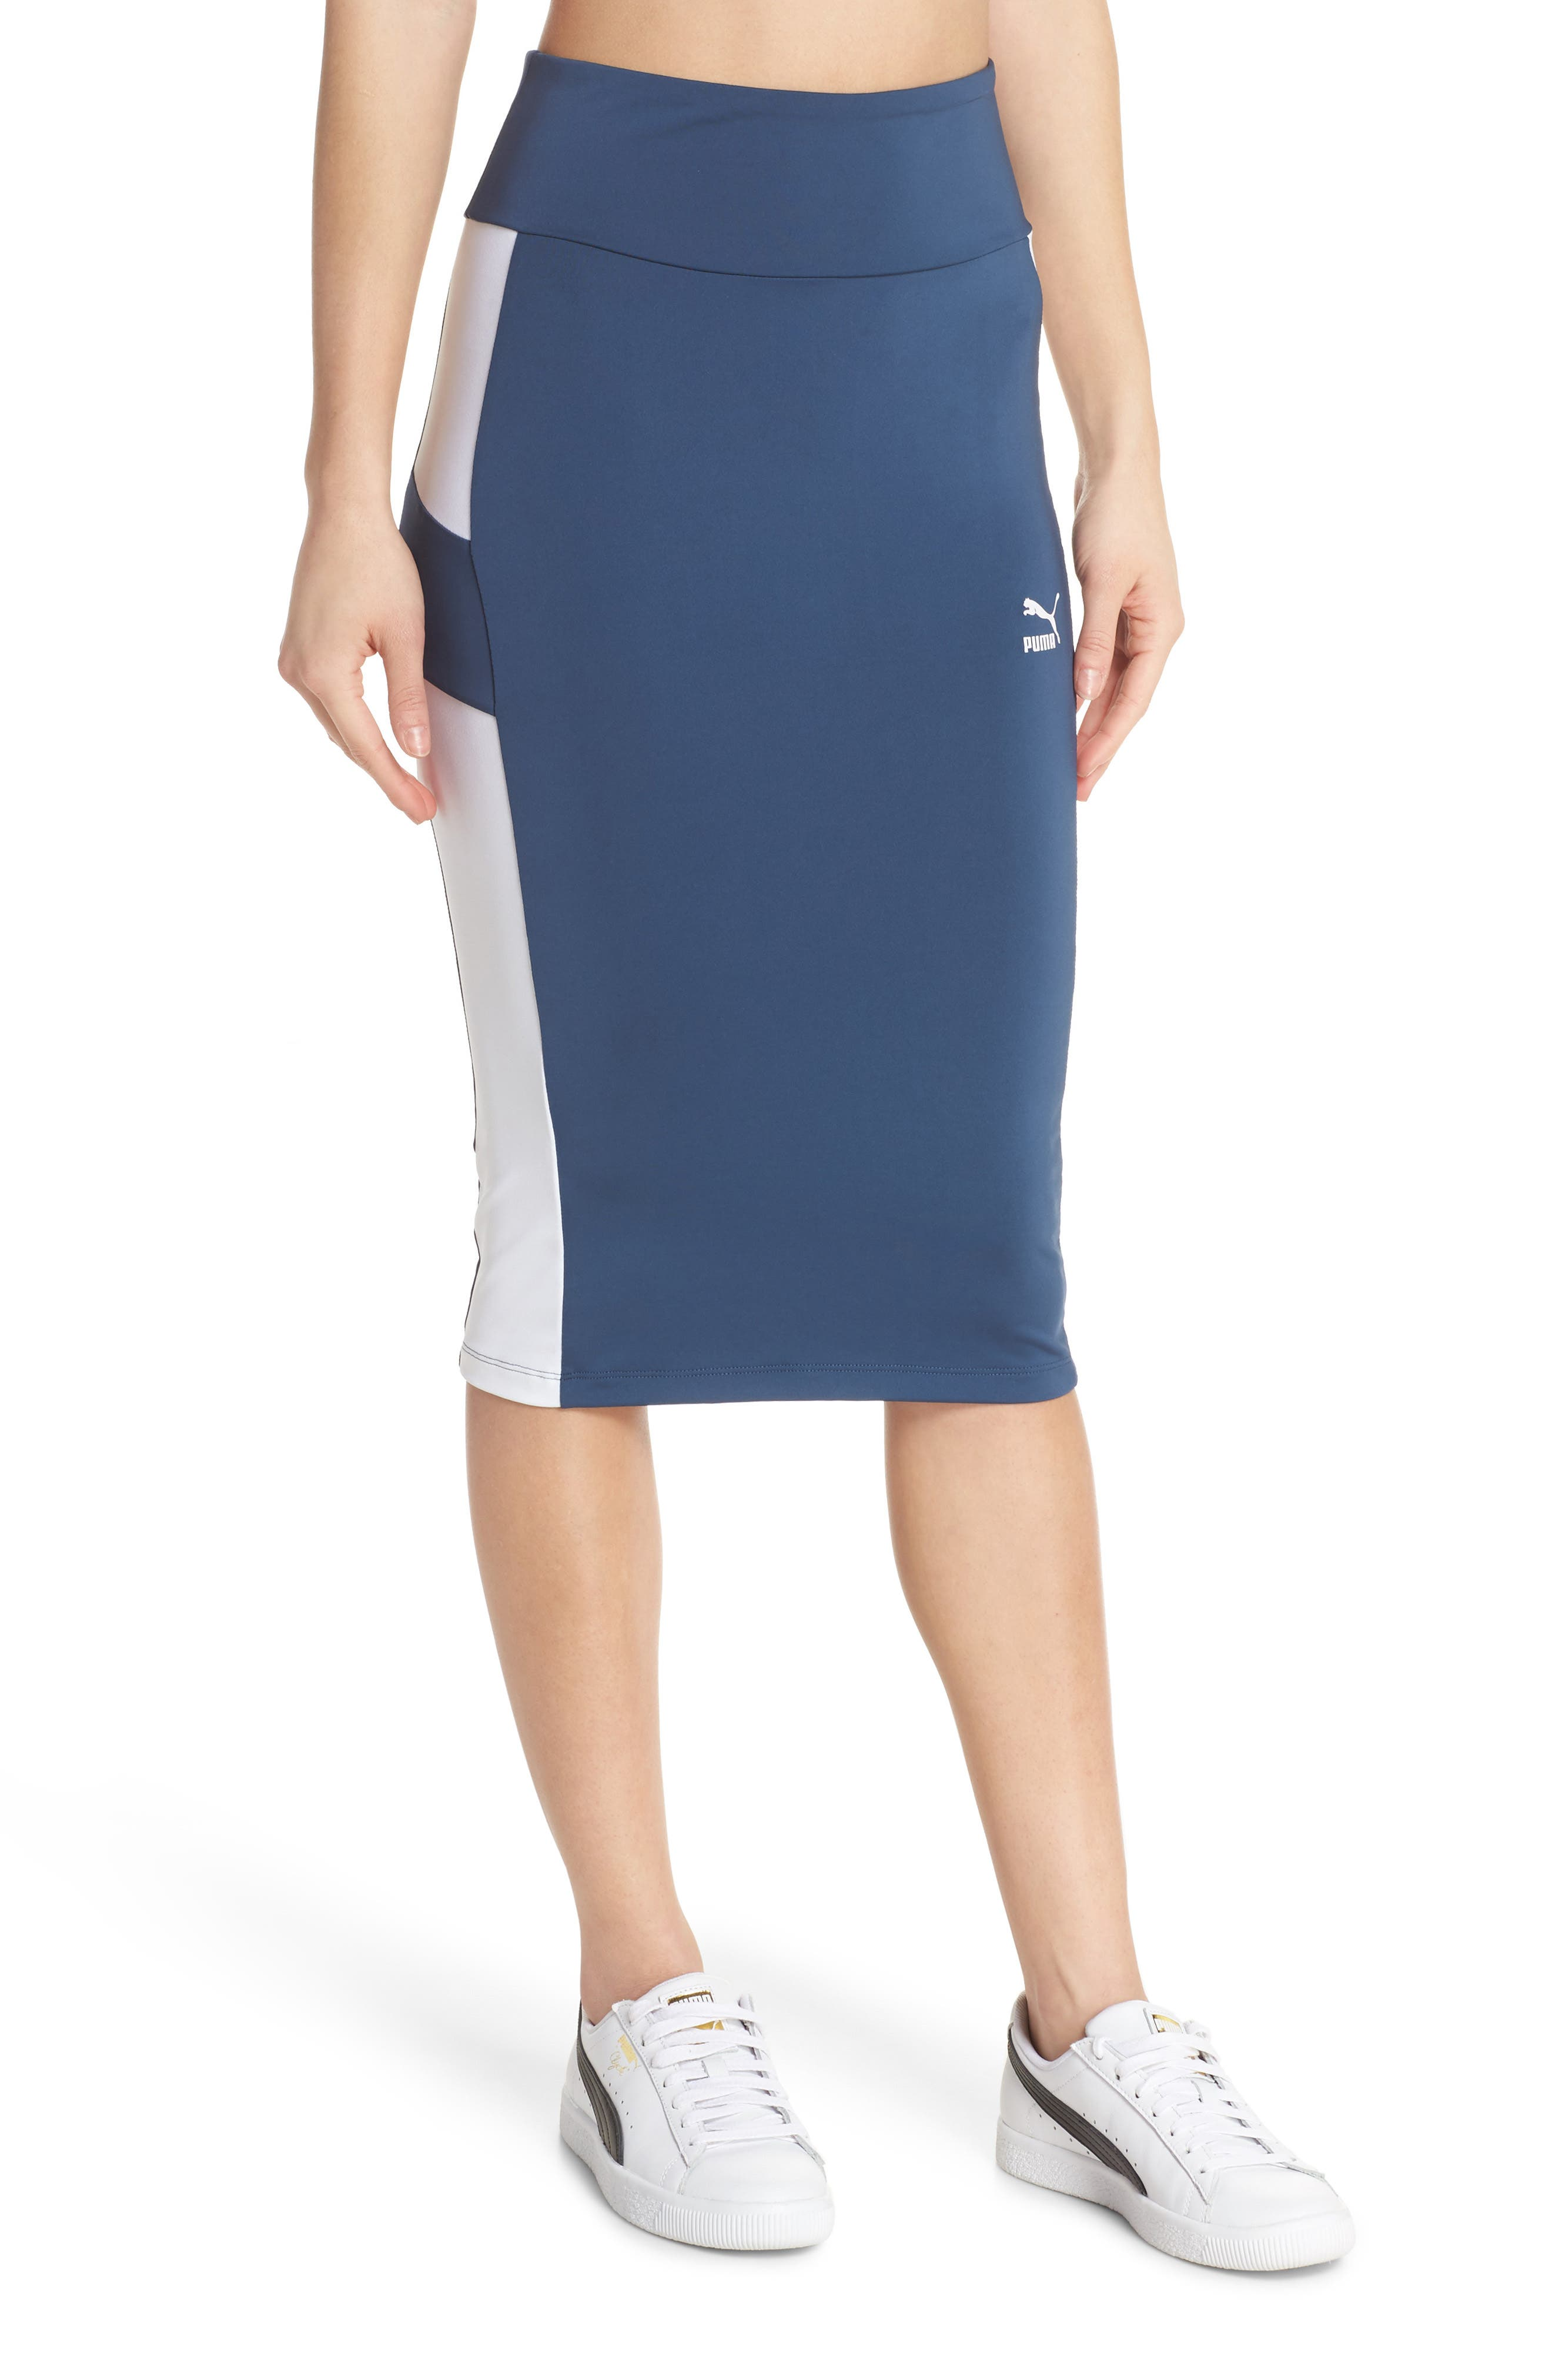 Archive Logo Pencil Skirt,                         Main,                         color, 403